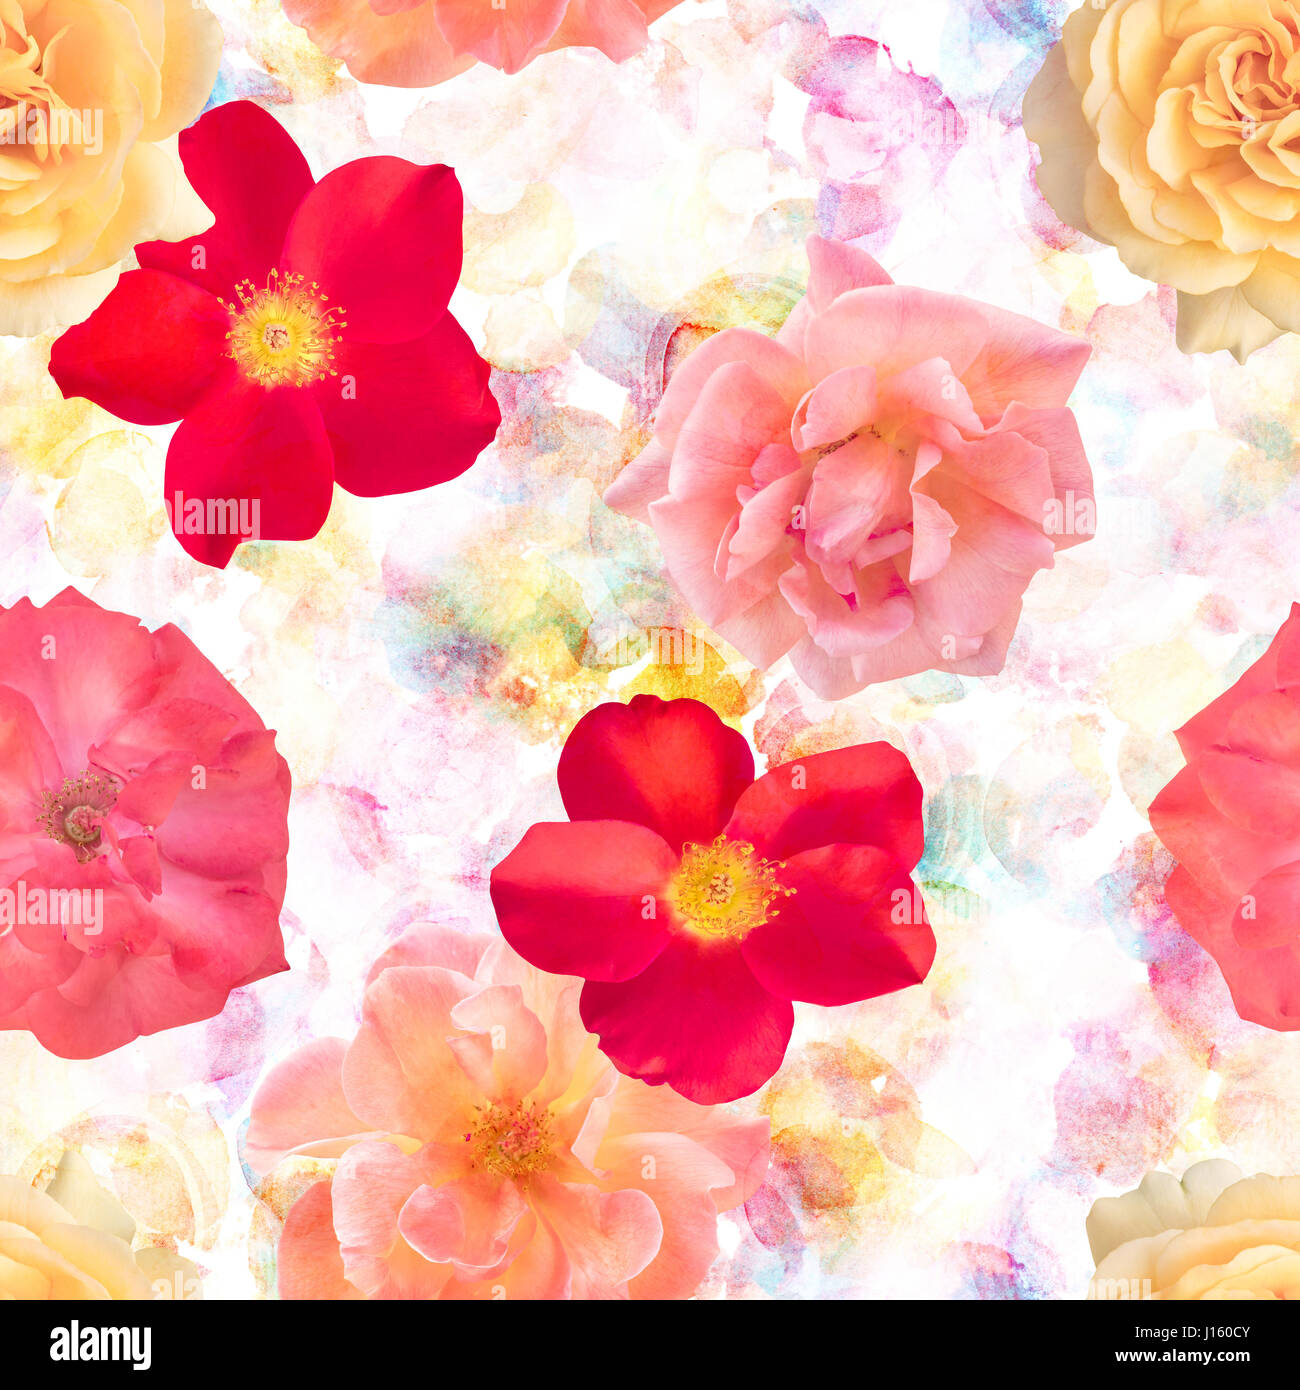 Red Watercolor Flowers Seamless Pattern Stock Photos & Red ...